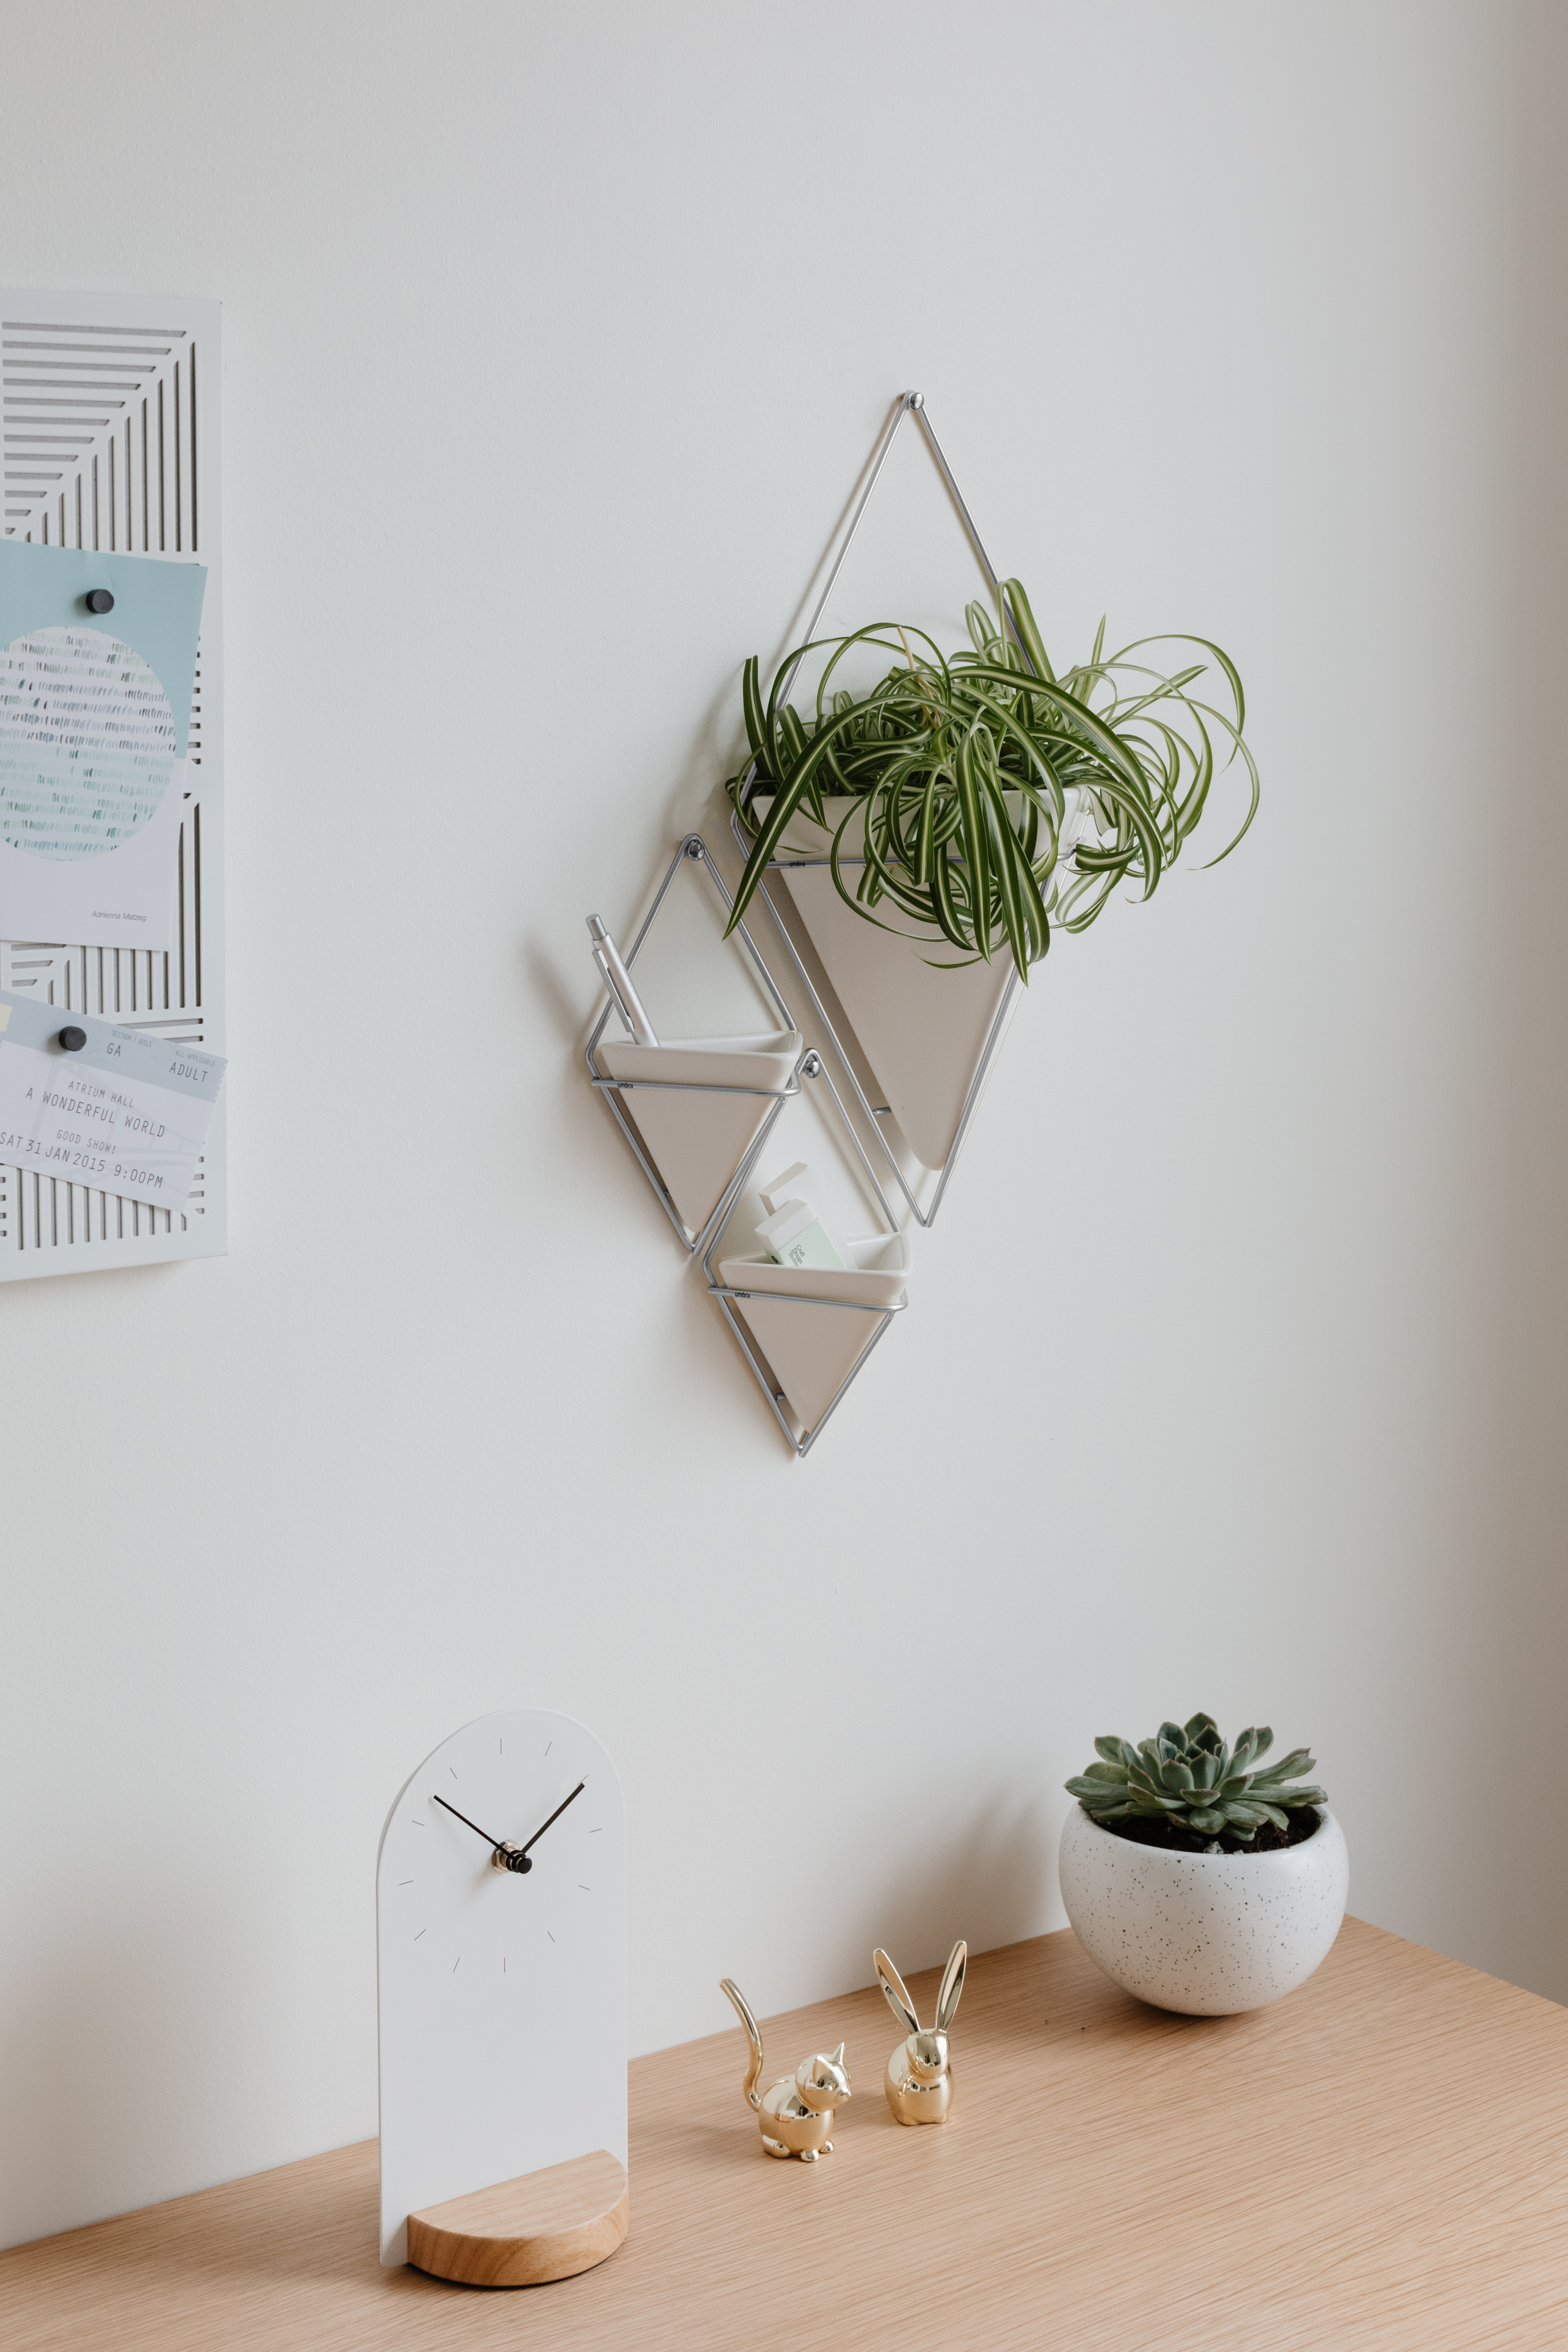 2020 Trigg Hanging Planter Vase & Geometric Wall Decor Container – Great With Regard To 2 Piece Trigg Wall Decor Sets (set Of 2) (View 14 of 20)